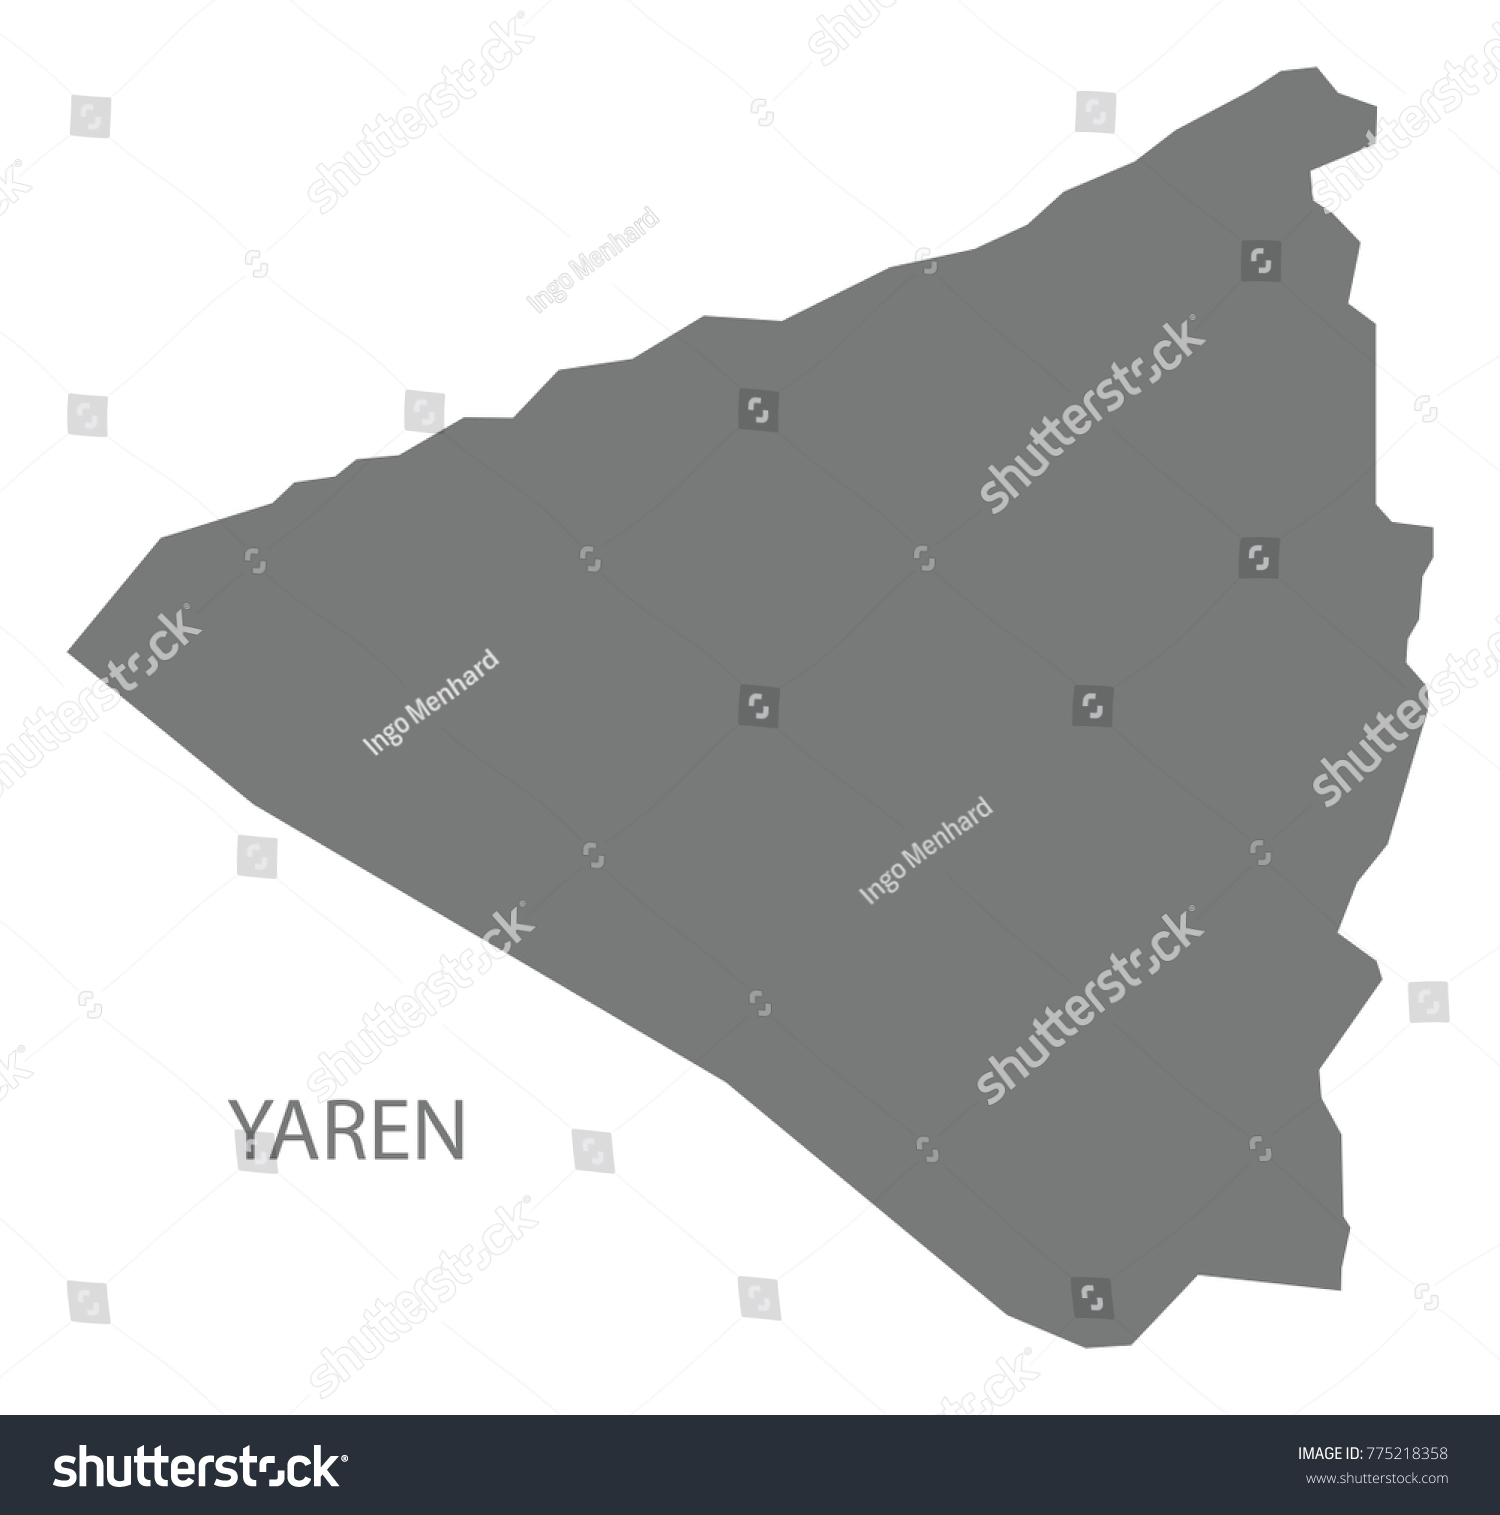 Yaren Map Nauru Grey Illustration Silhouette Stock Vector 775218358